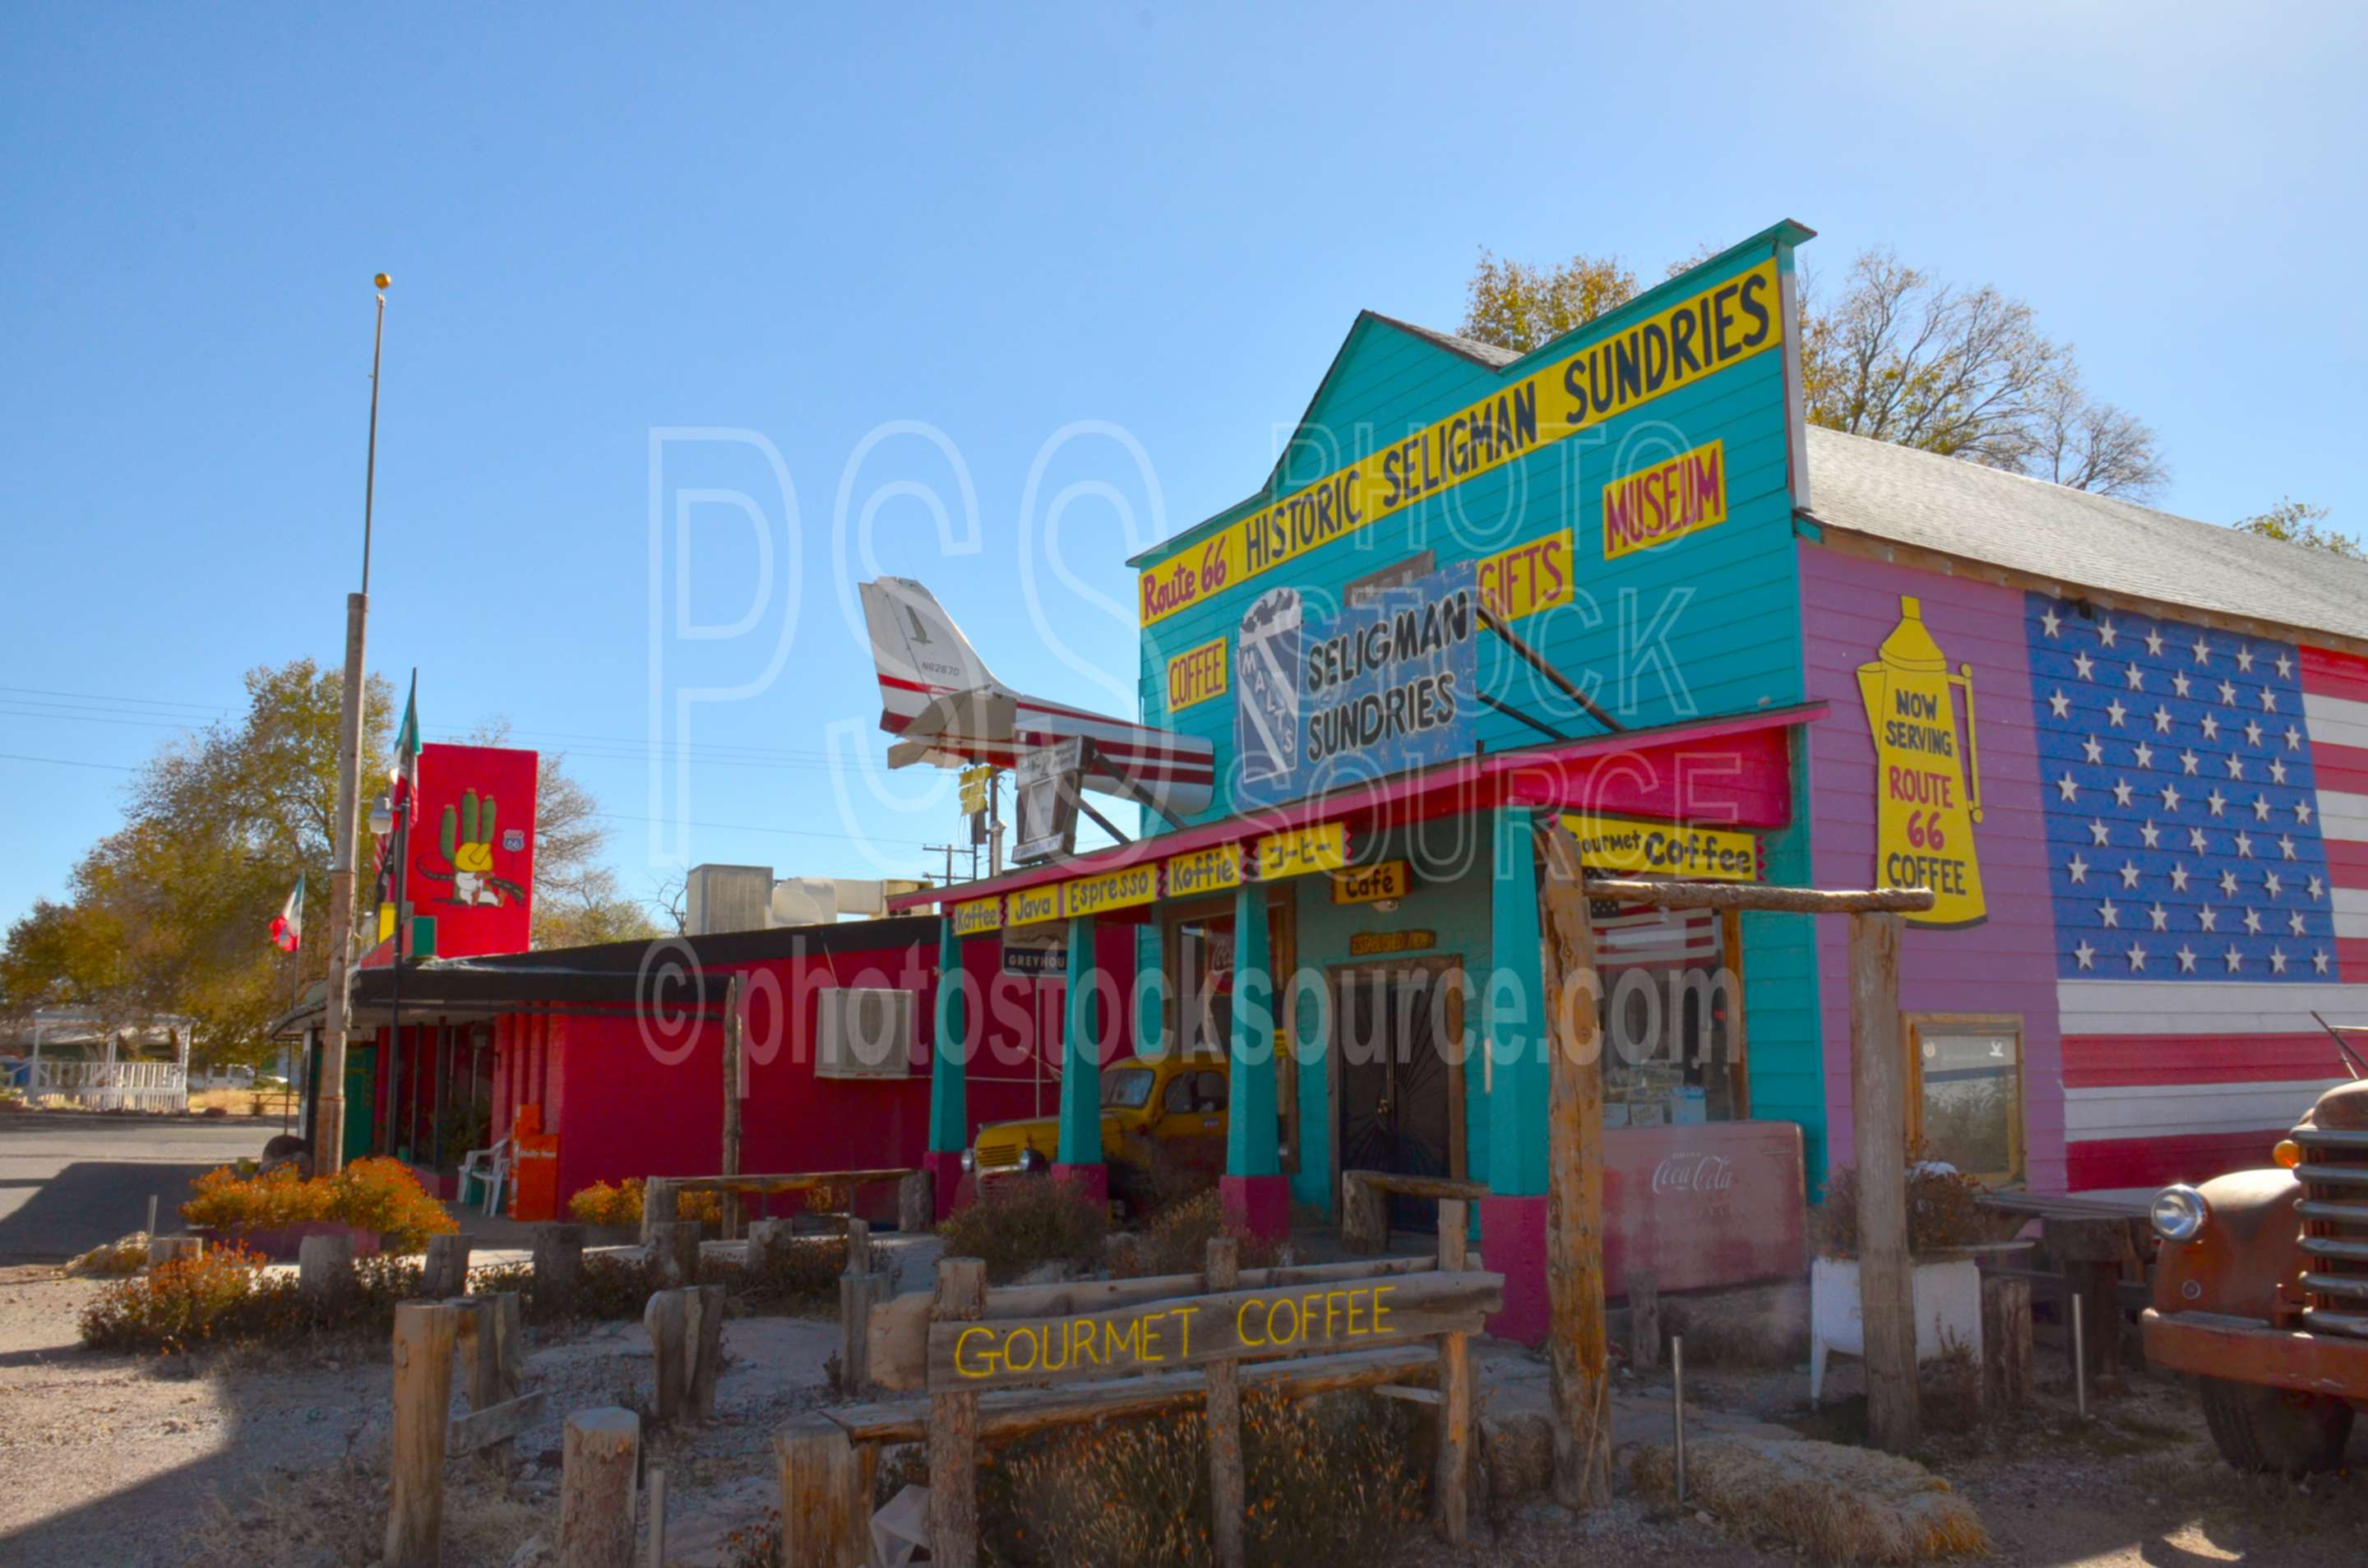 Historic Seligman Sundries,roadside attraction,route 66,store,souvenirs,historic,historical,building,western